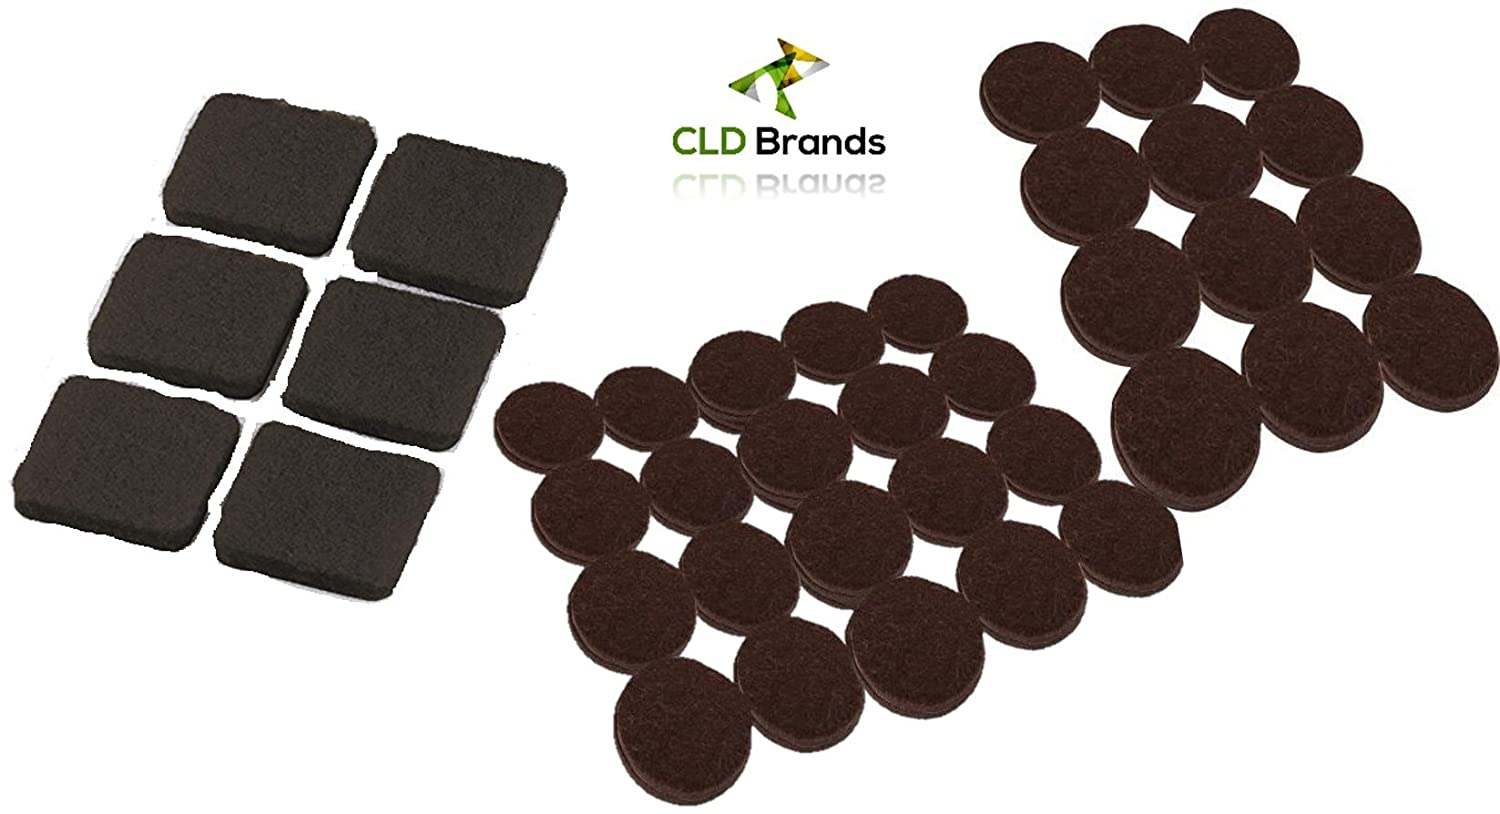 Amazon.com : Self Adhesive Black Felt Pads Set   38 Pieces   Protect  Flooring And Table Tops From Scratches   Chair Glides For Furniture, Bar  Stools, Lamps, ...